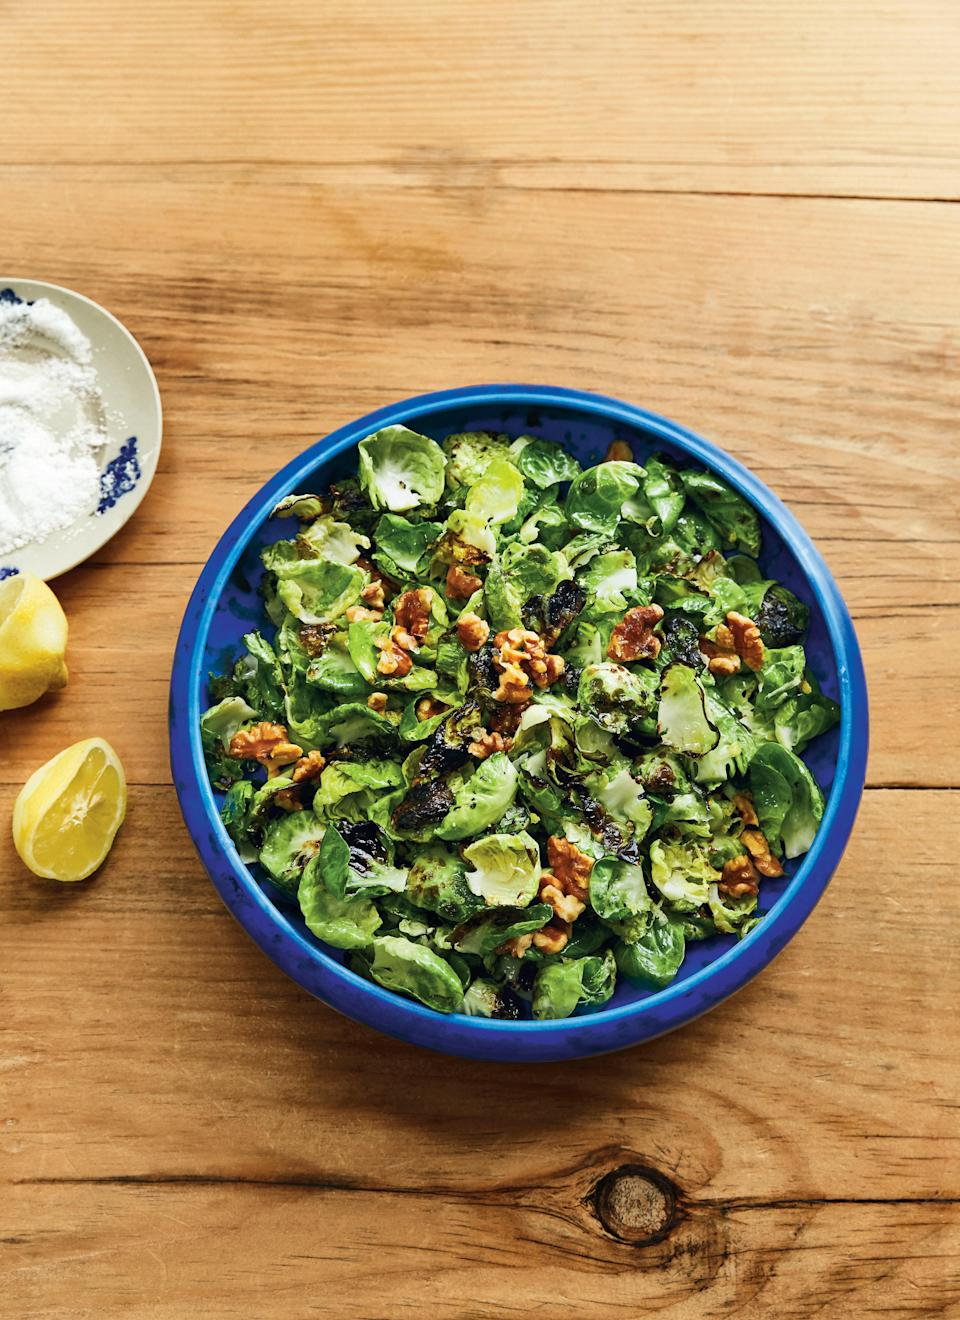 "<a href=""https://www.bonappetit.com/recipe/stir-fried-brussels-sprouts?mbid=synd_yahoo_rss"" rel=""nofollow noopener"" target=""_blank"" data-ylk=""slk:See recipe."" class=""link rapid-noclick-resp"">See recipe.</a>"